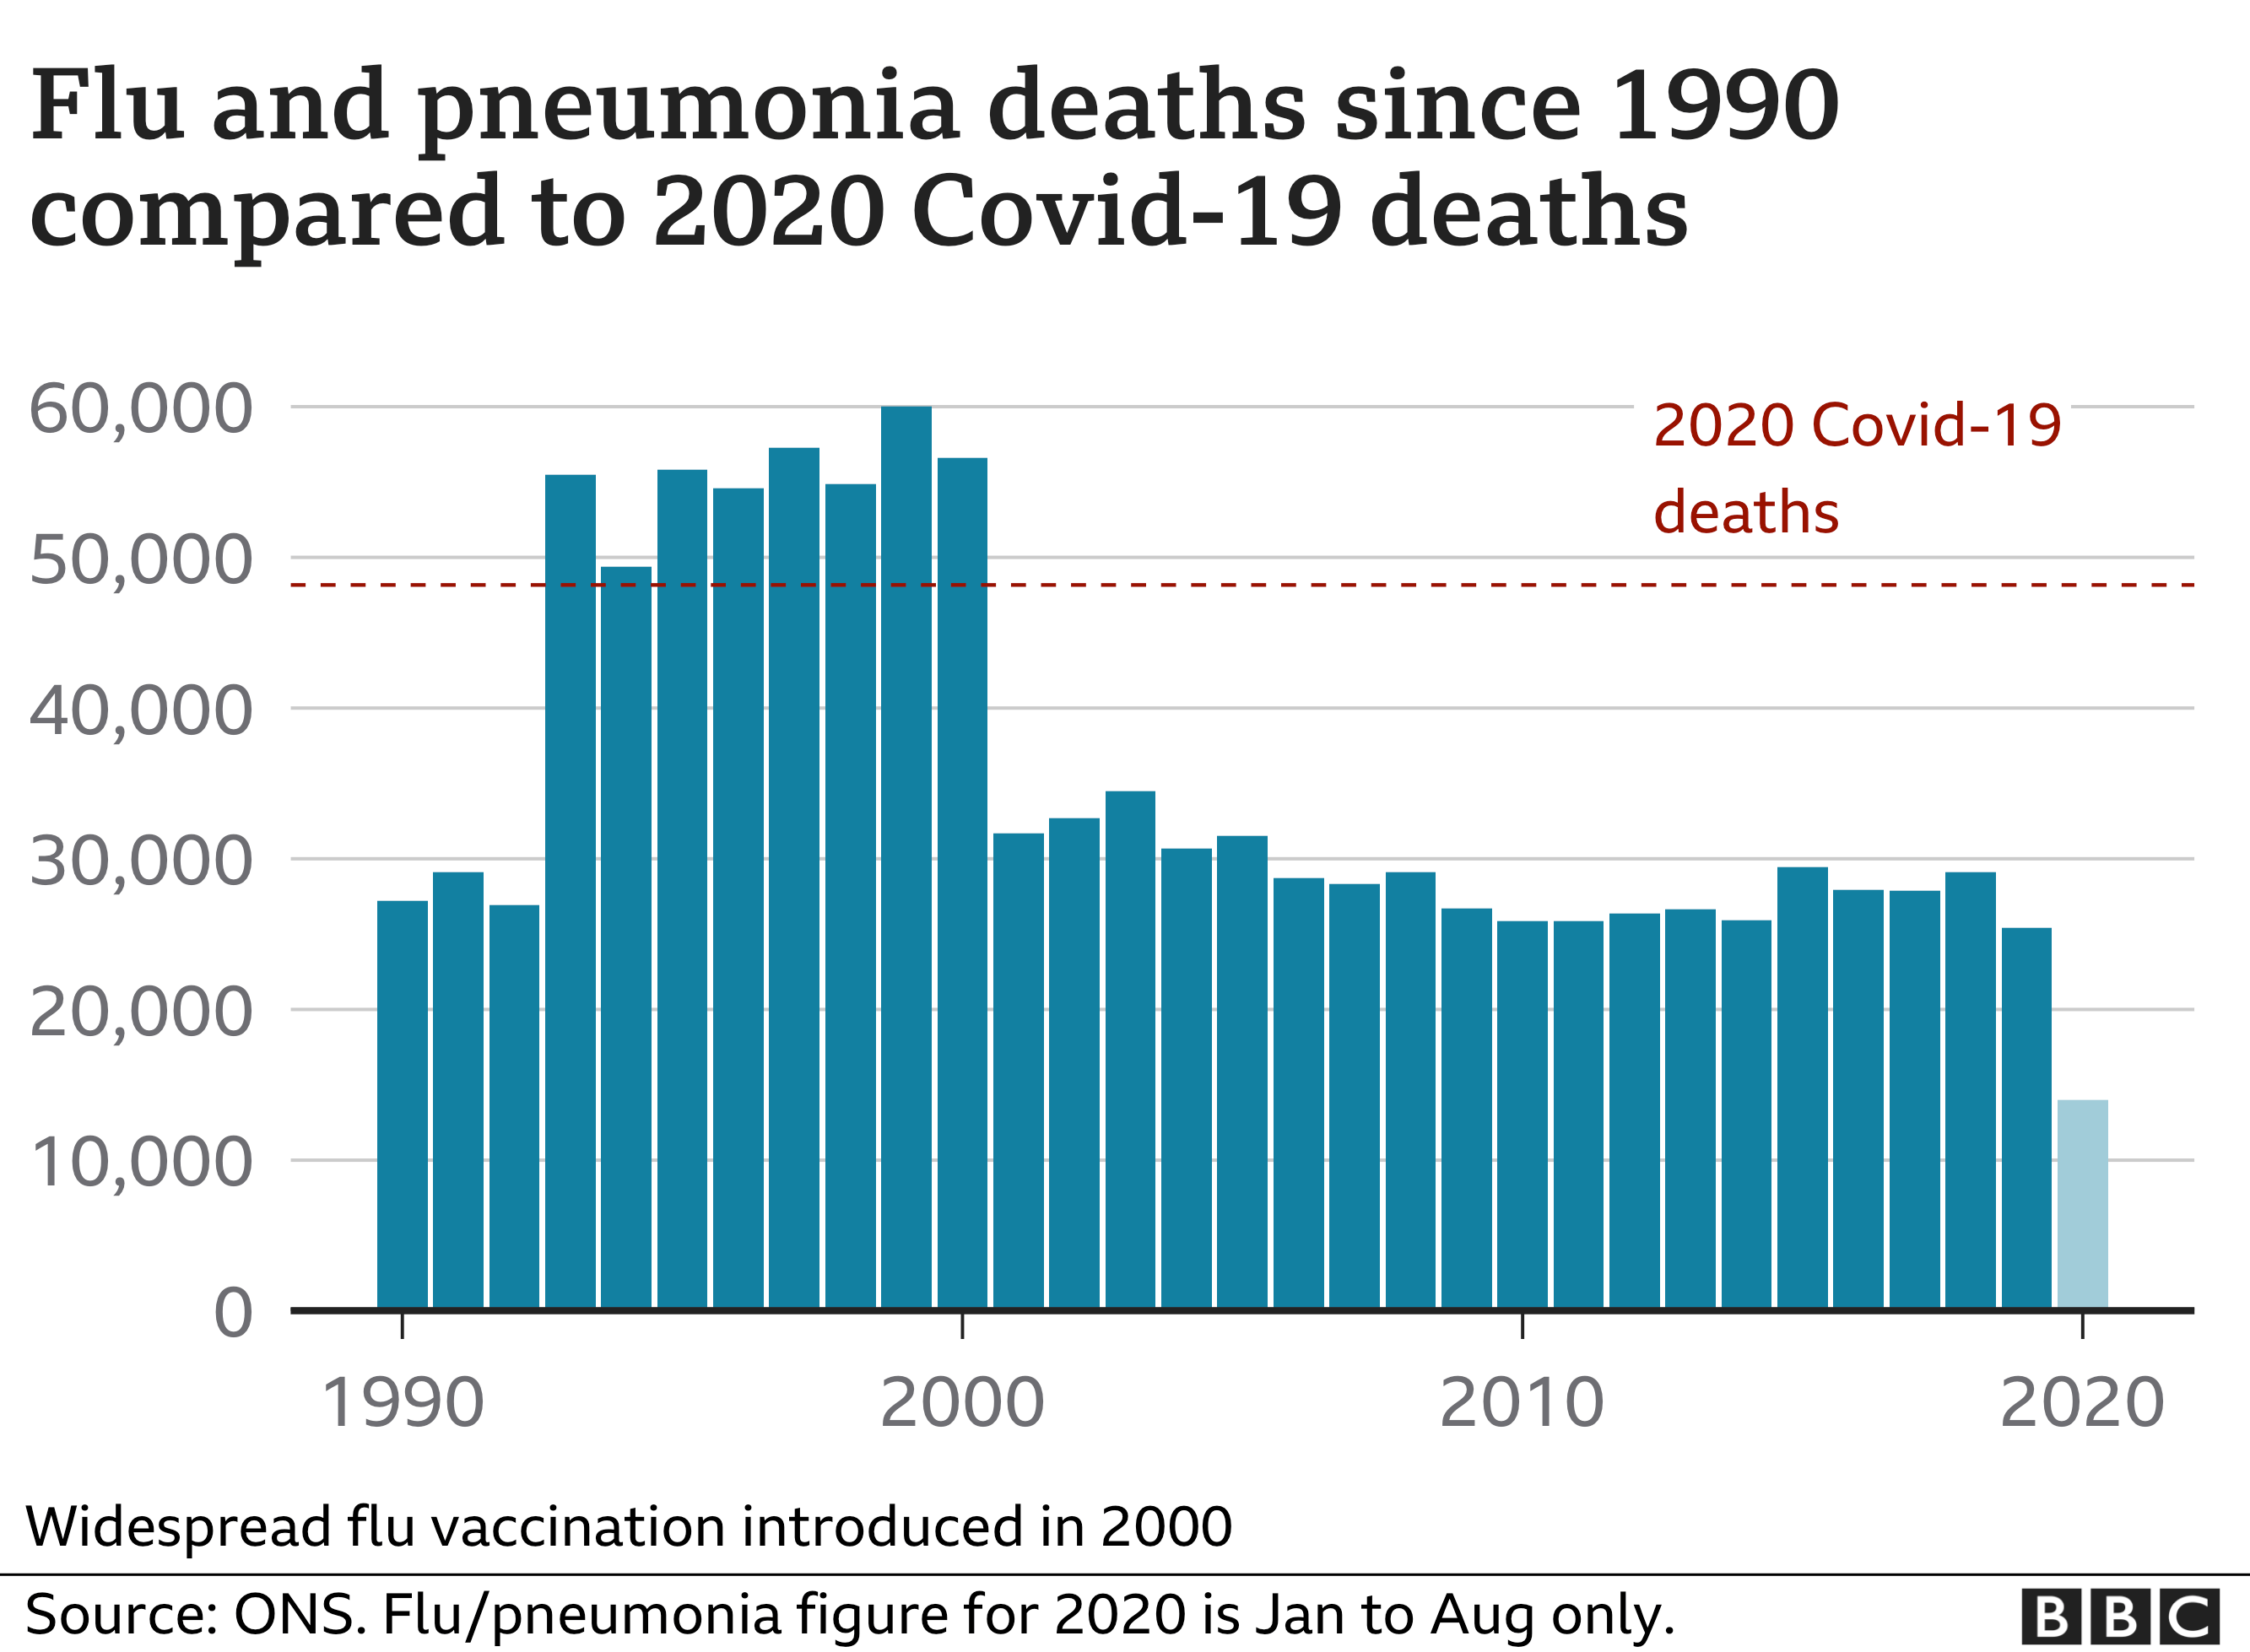 Chart showing flu/pneumonia deaths and Covid-19 deaths compared